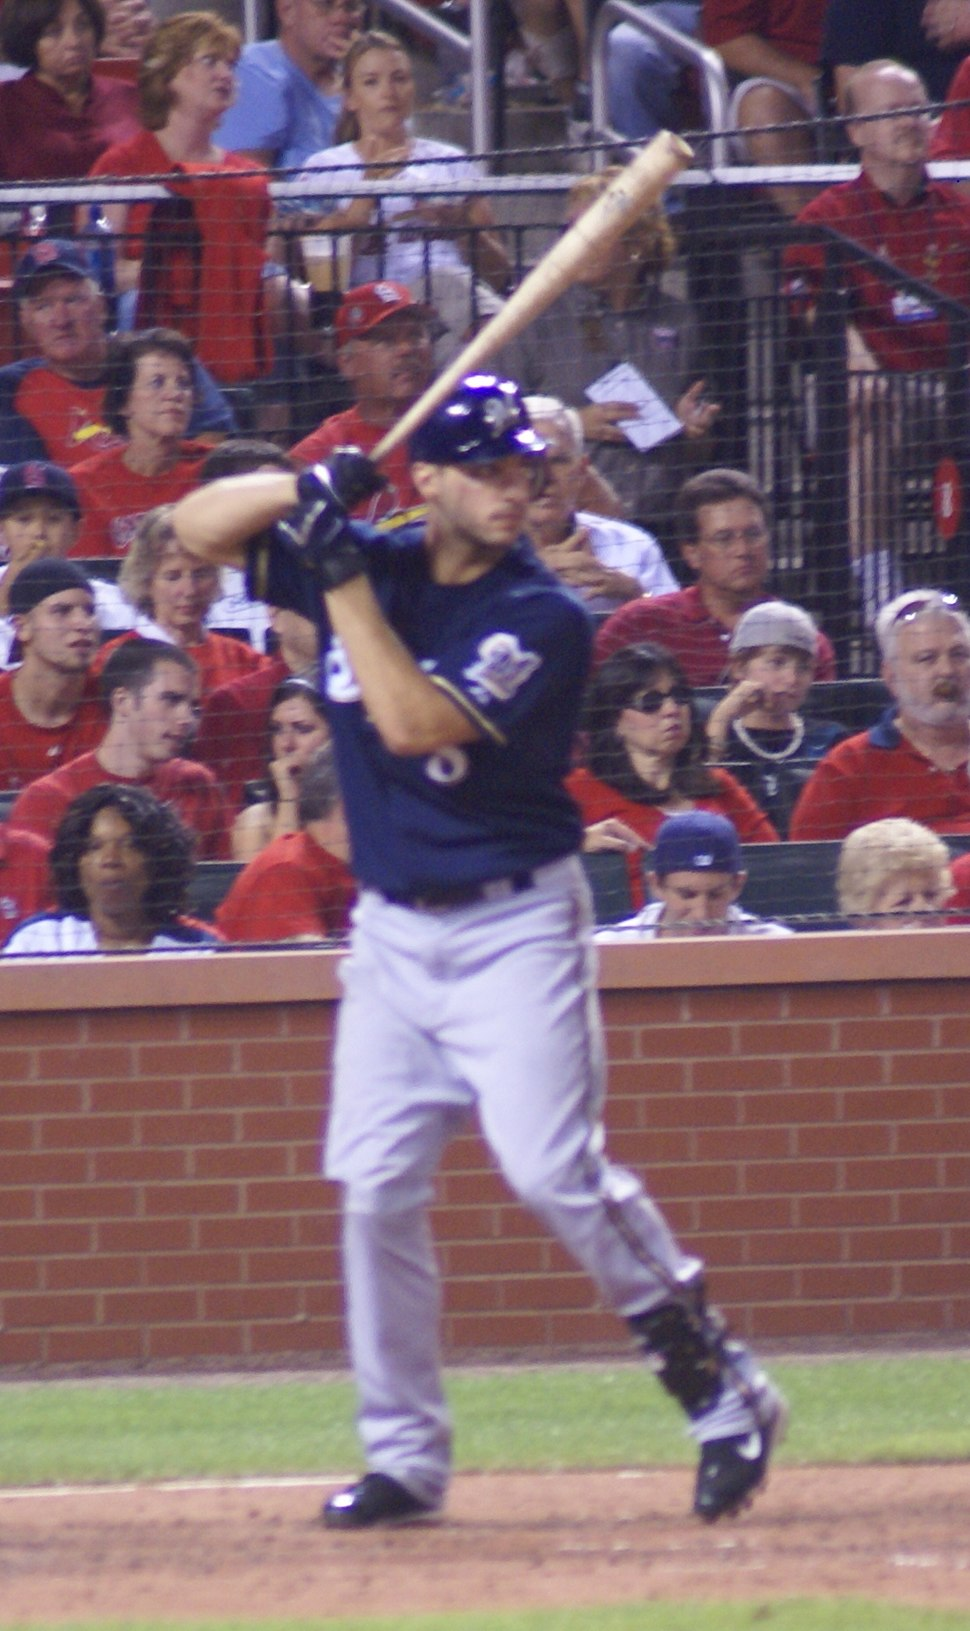 Ryan Braun at bat in August 2008